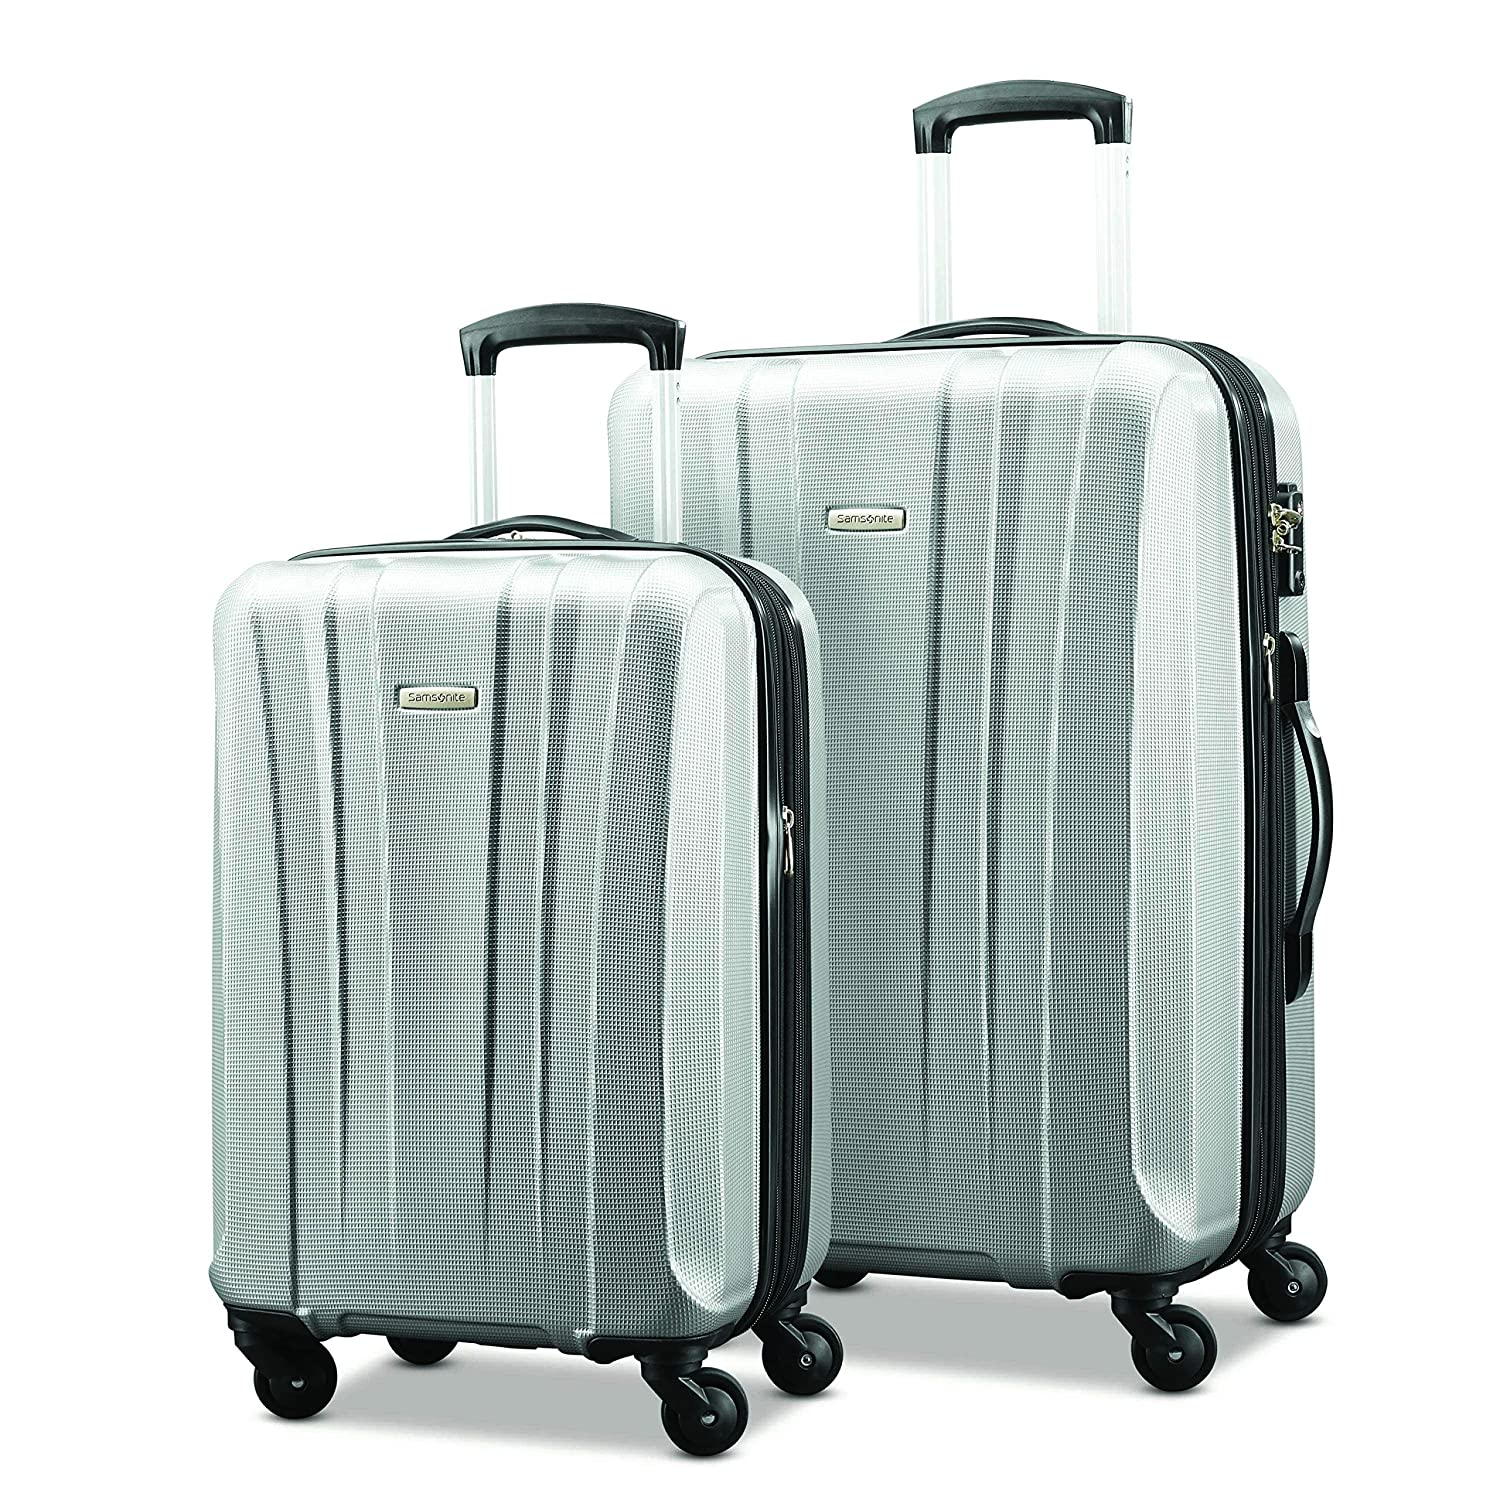 Samsonite Plus Hardside Luggag...